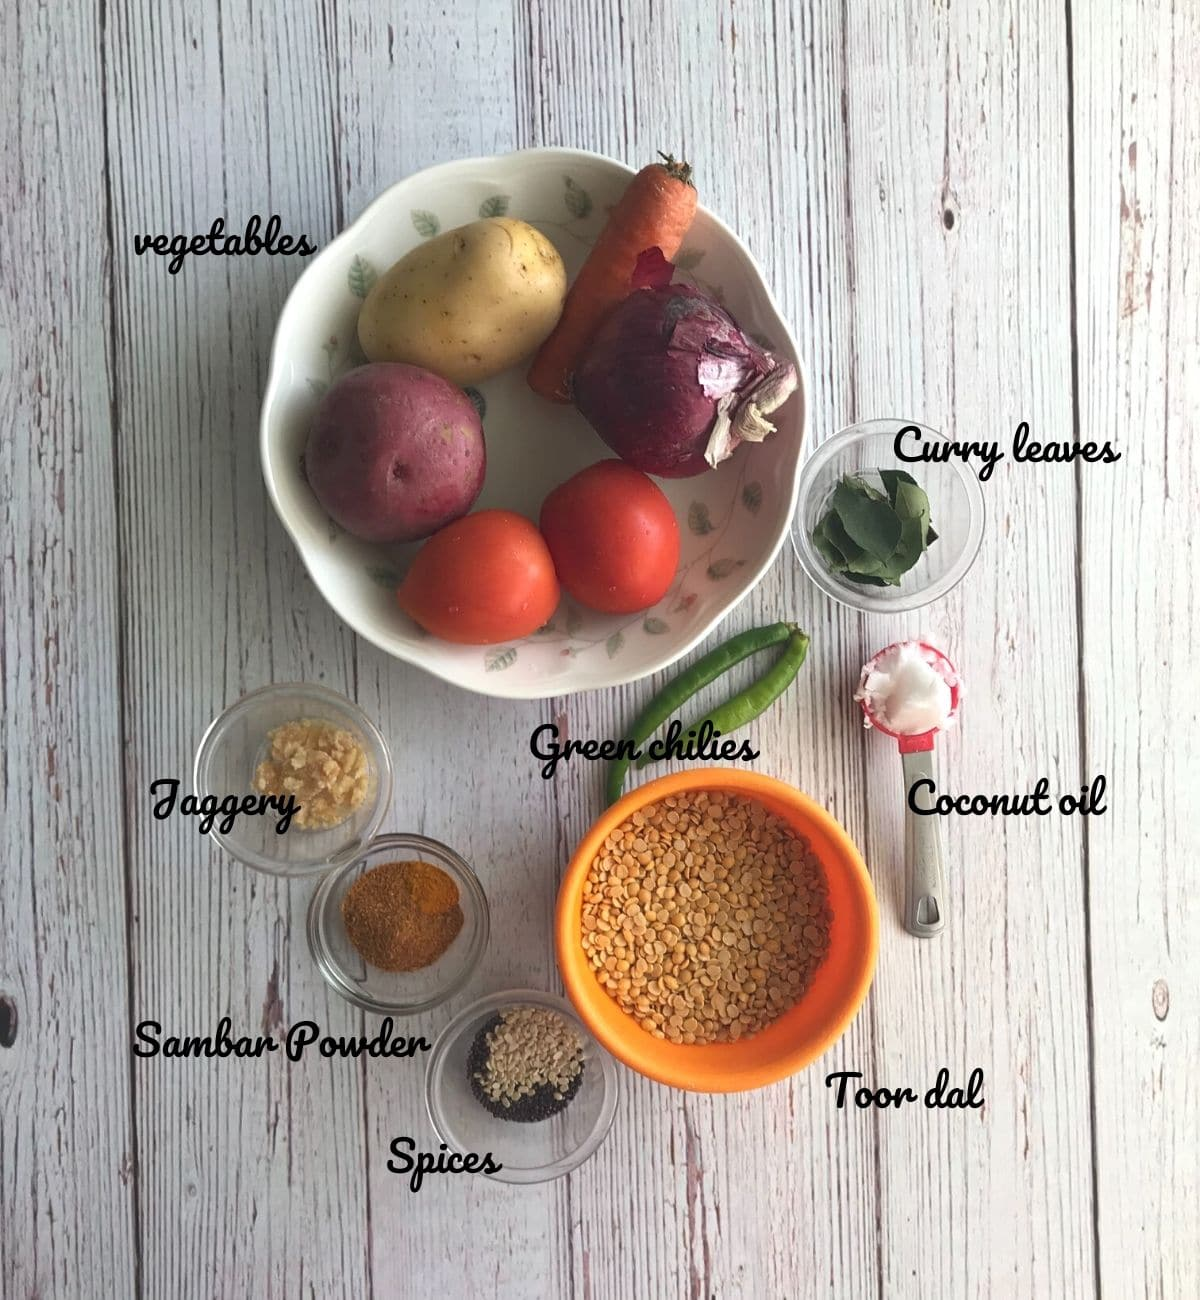 vegetables, spices are placed on the table for sambar recipe